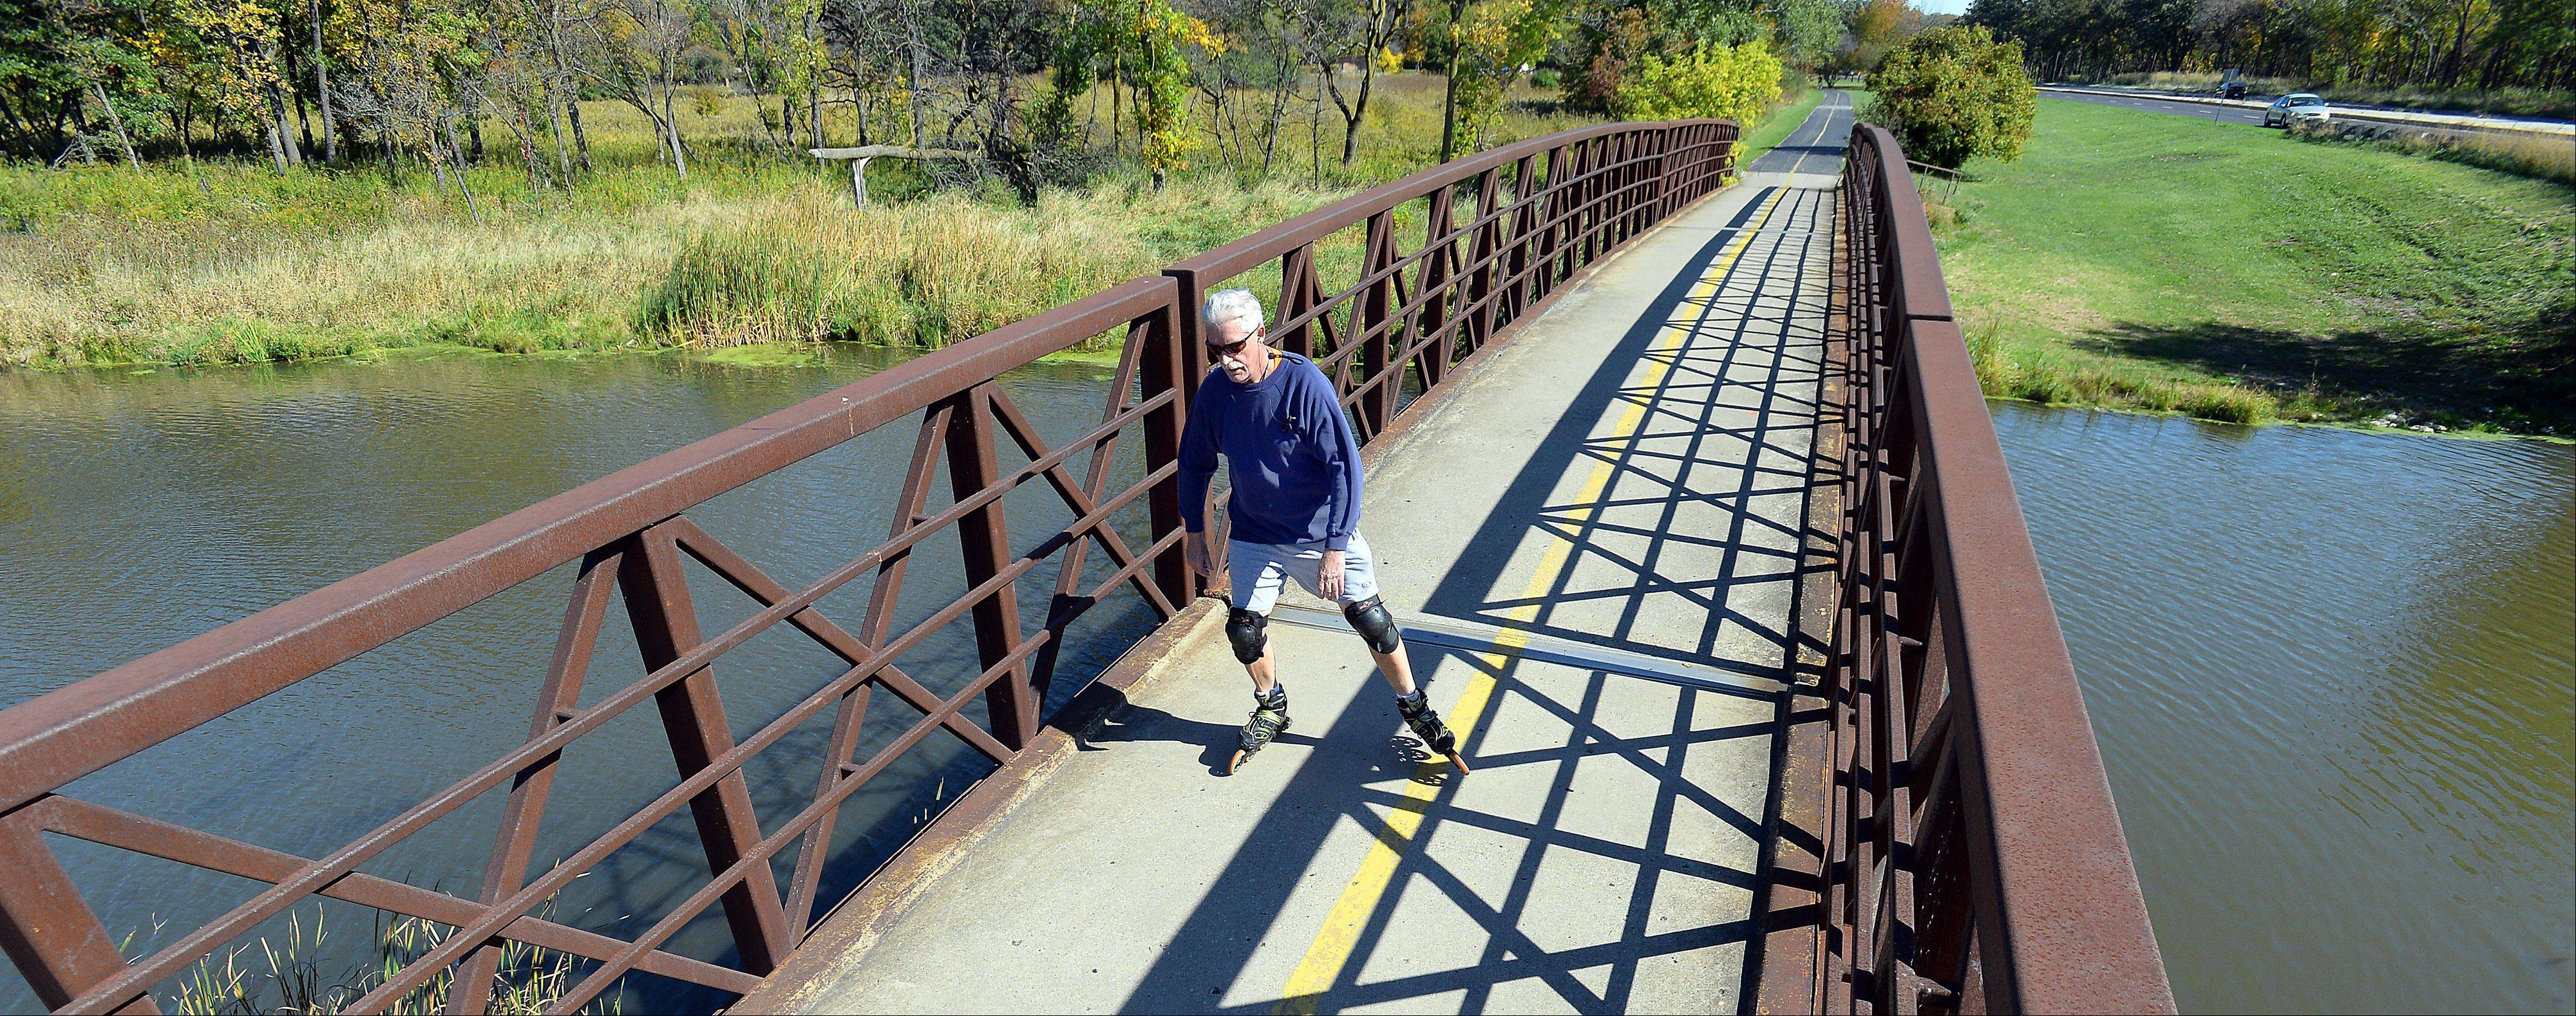 Neil Stout, 64, of Schaumburg, crosses the bridge next to Higgins Road on Monday afternoon as he does five times a weeks in a ten-mile loop on the Busse Forest West bicycle trail for exercise and good clean air.